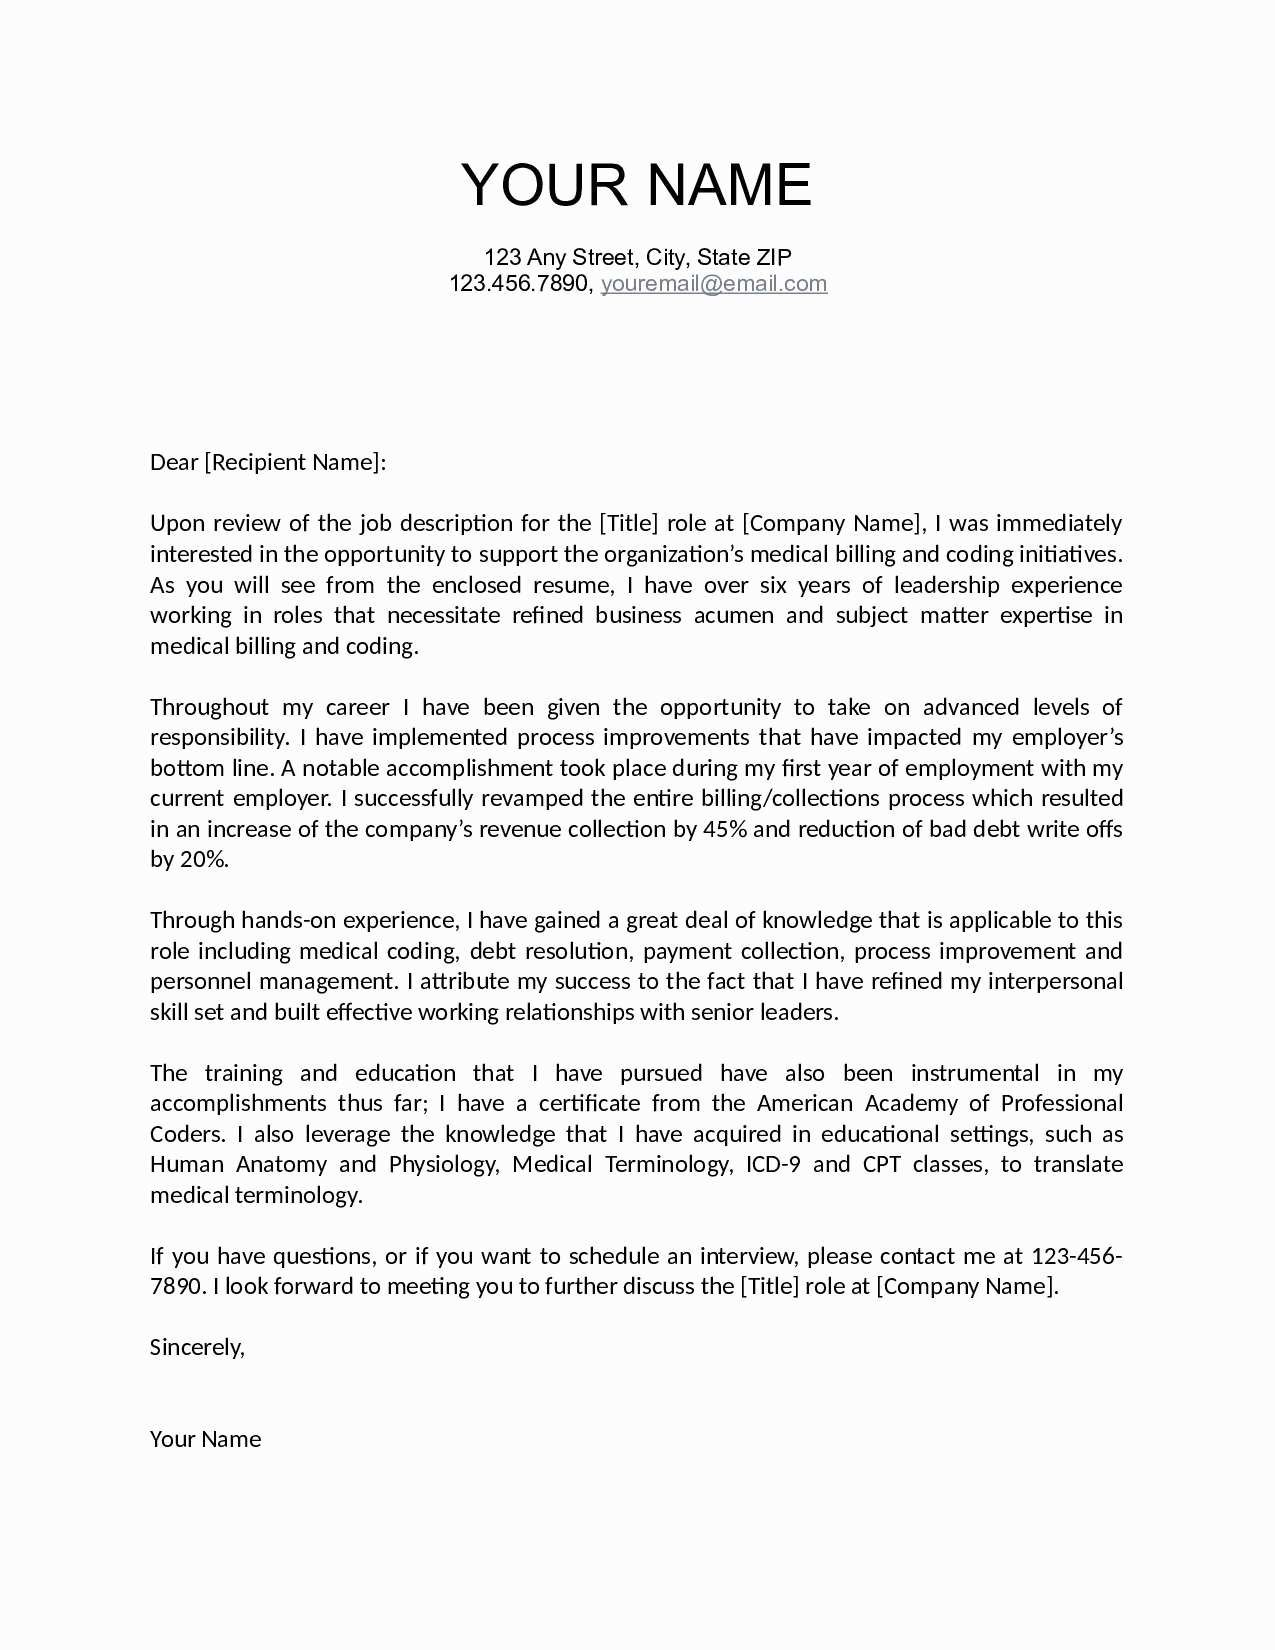 Letter Of Credit Confirmation Template - Letter Resolution Template